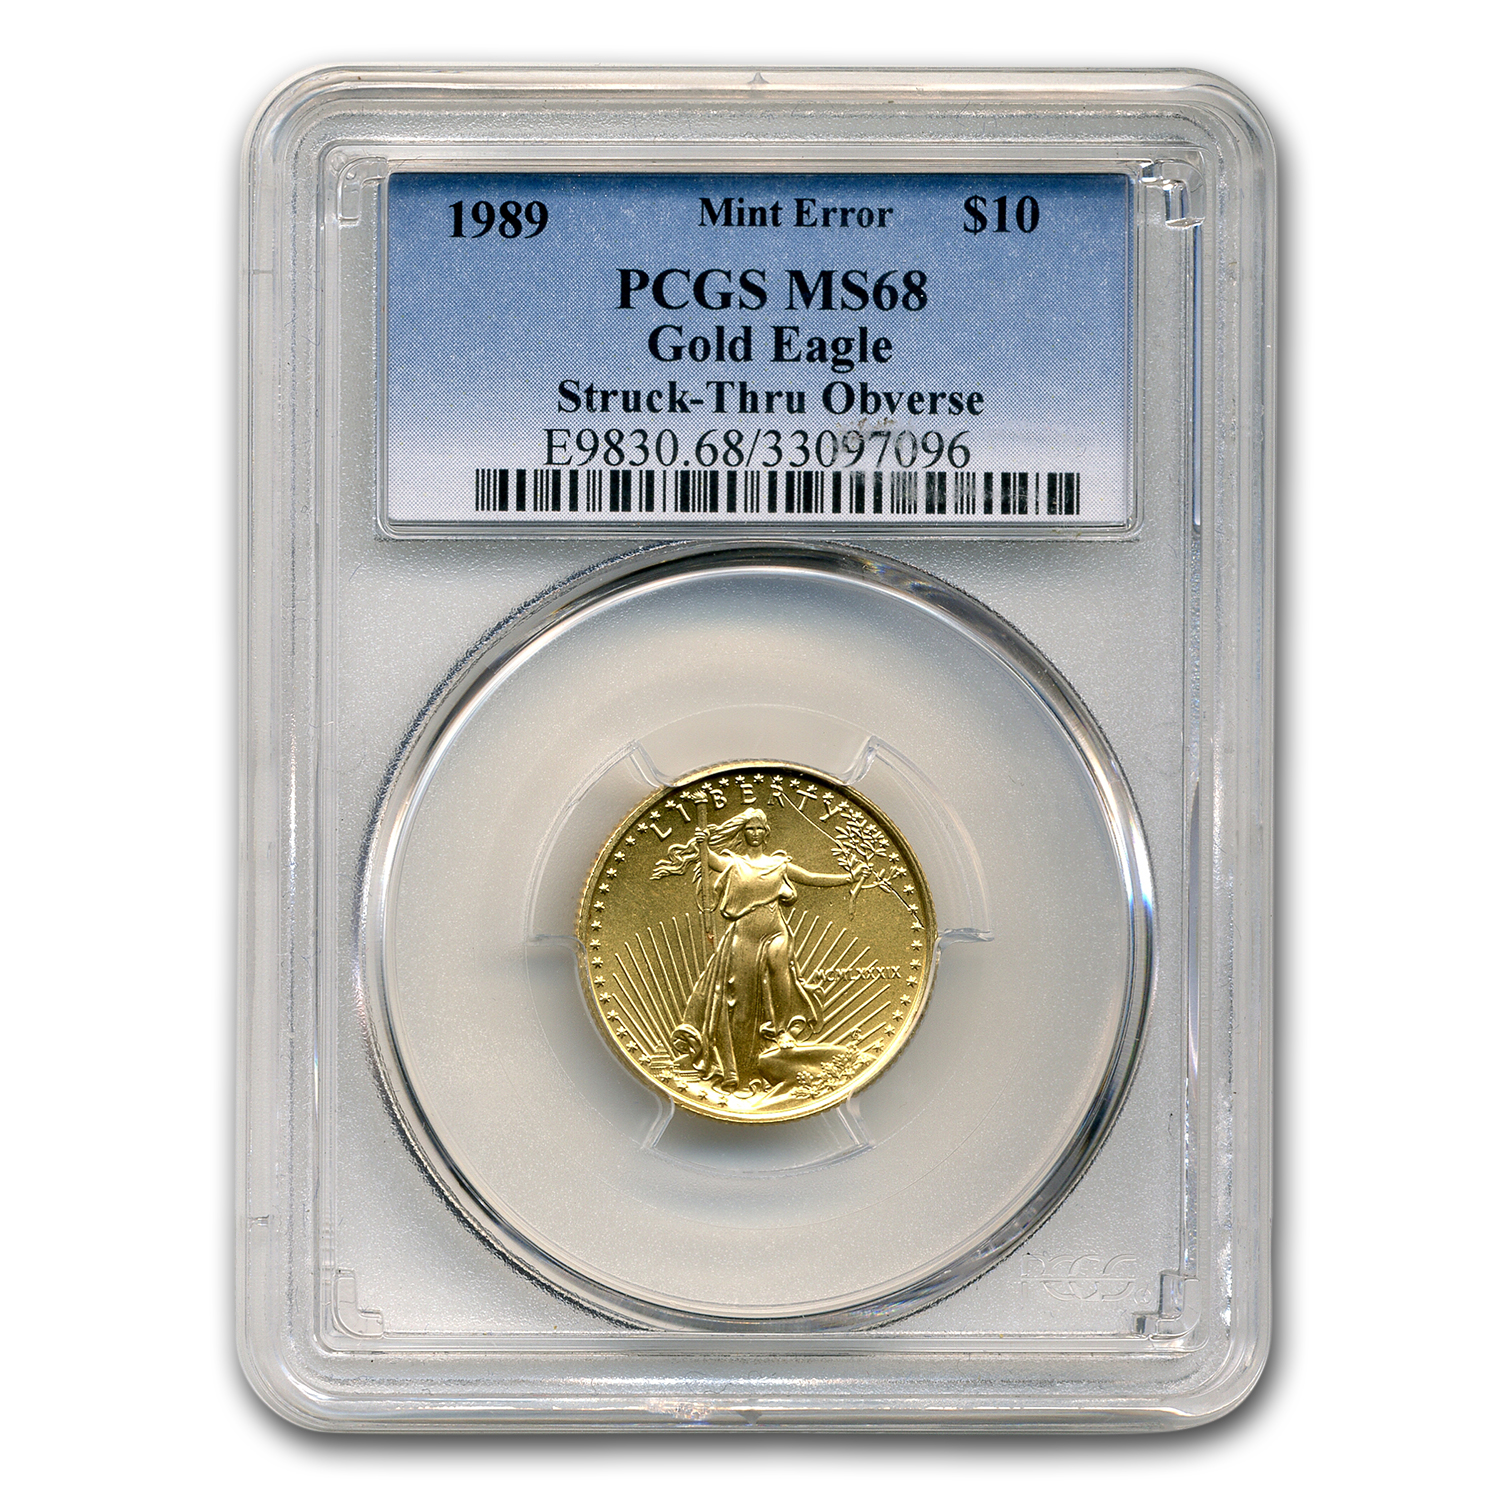 1989 1/4 oz Gold American Eagle MS-68 PCGS (Obv Mint Error)